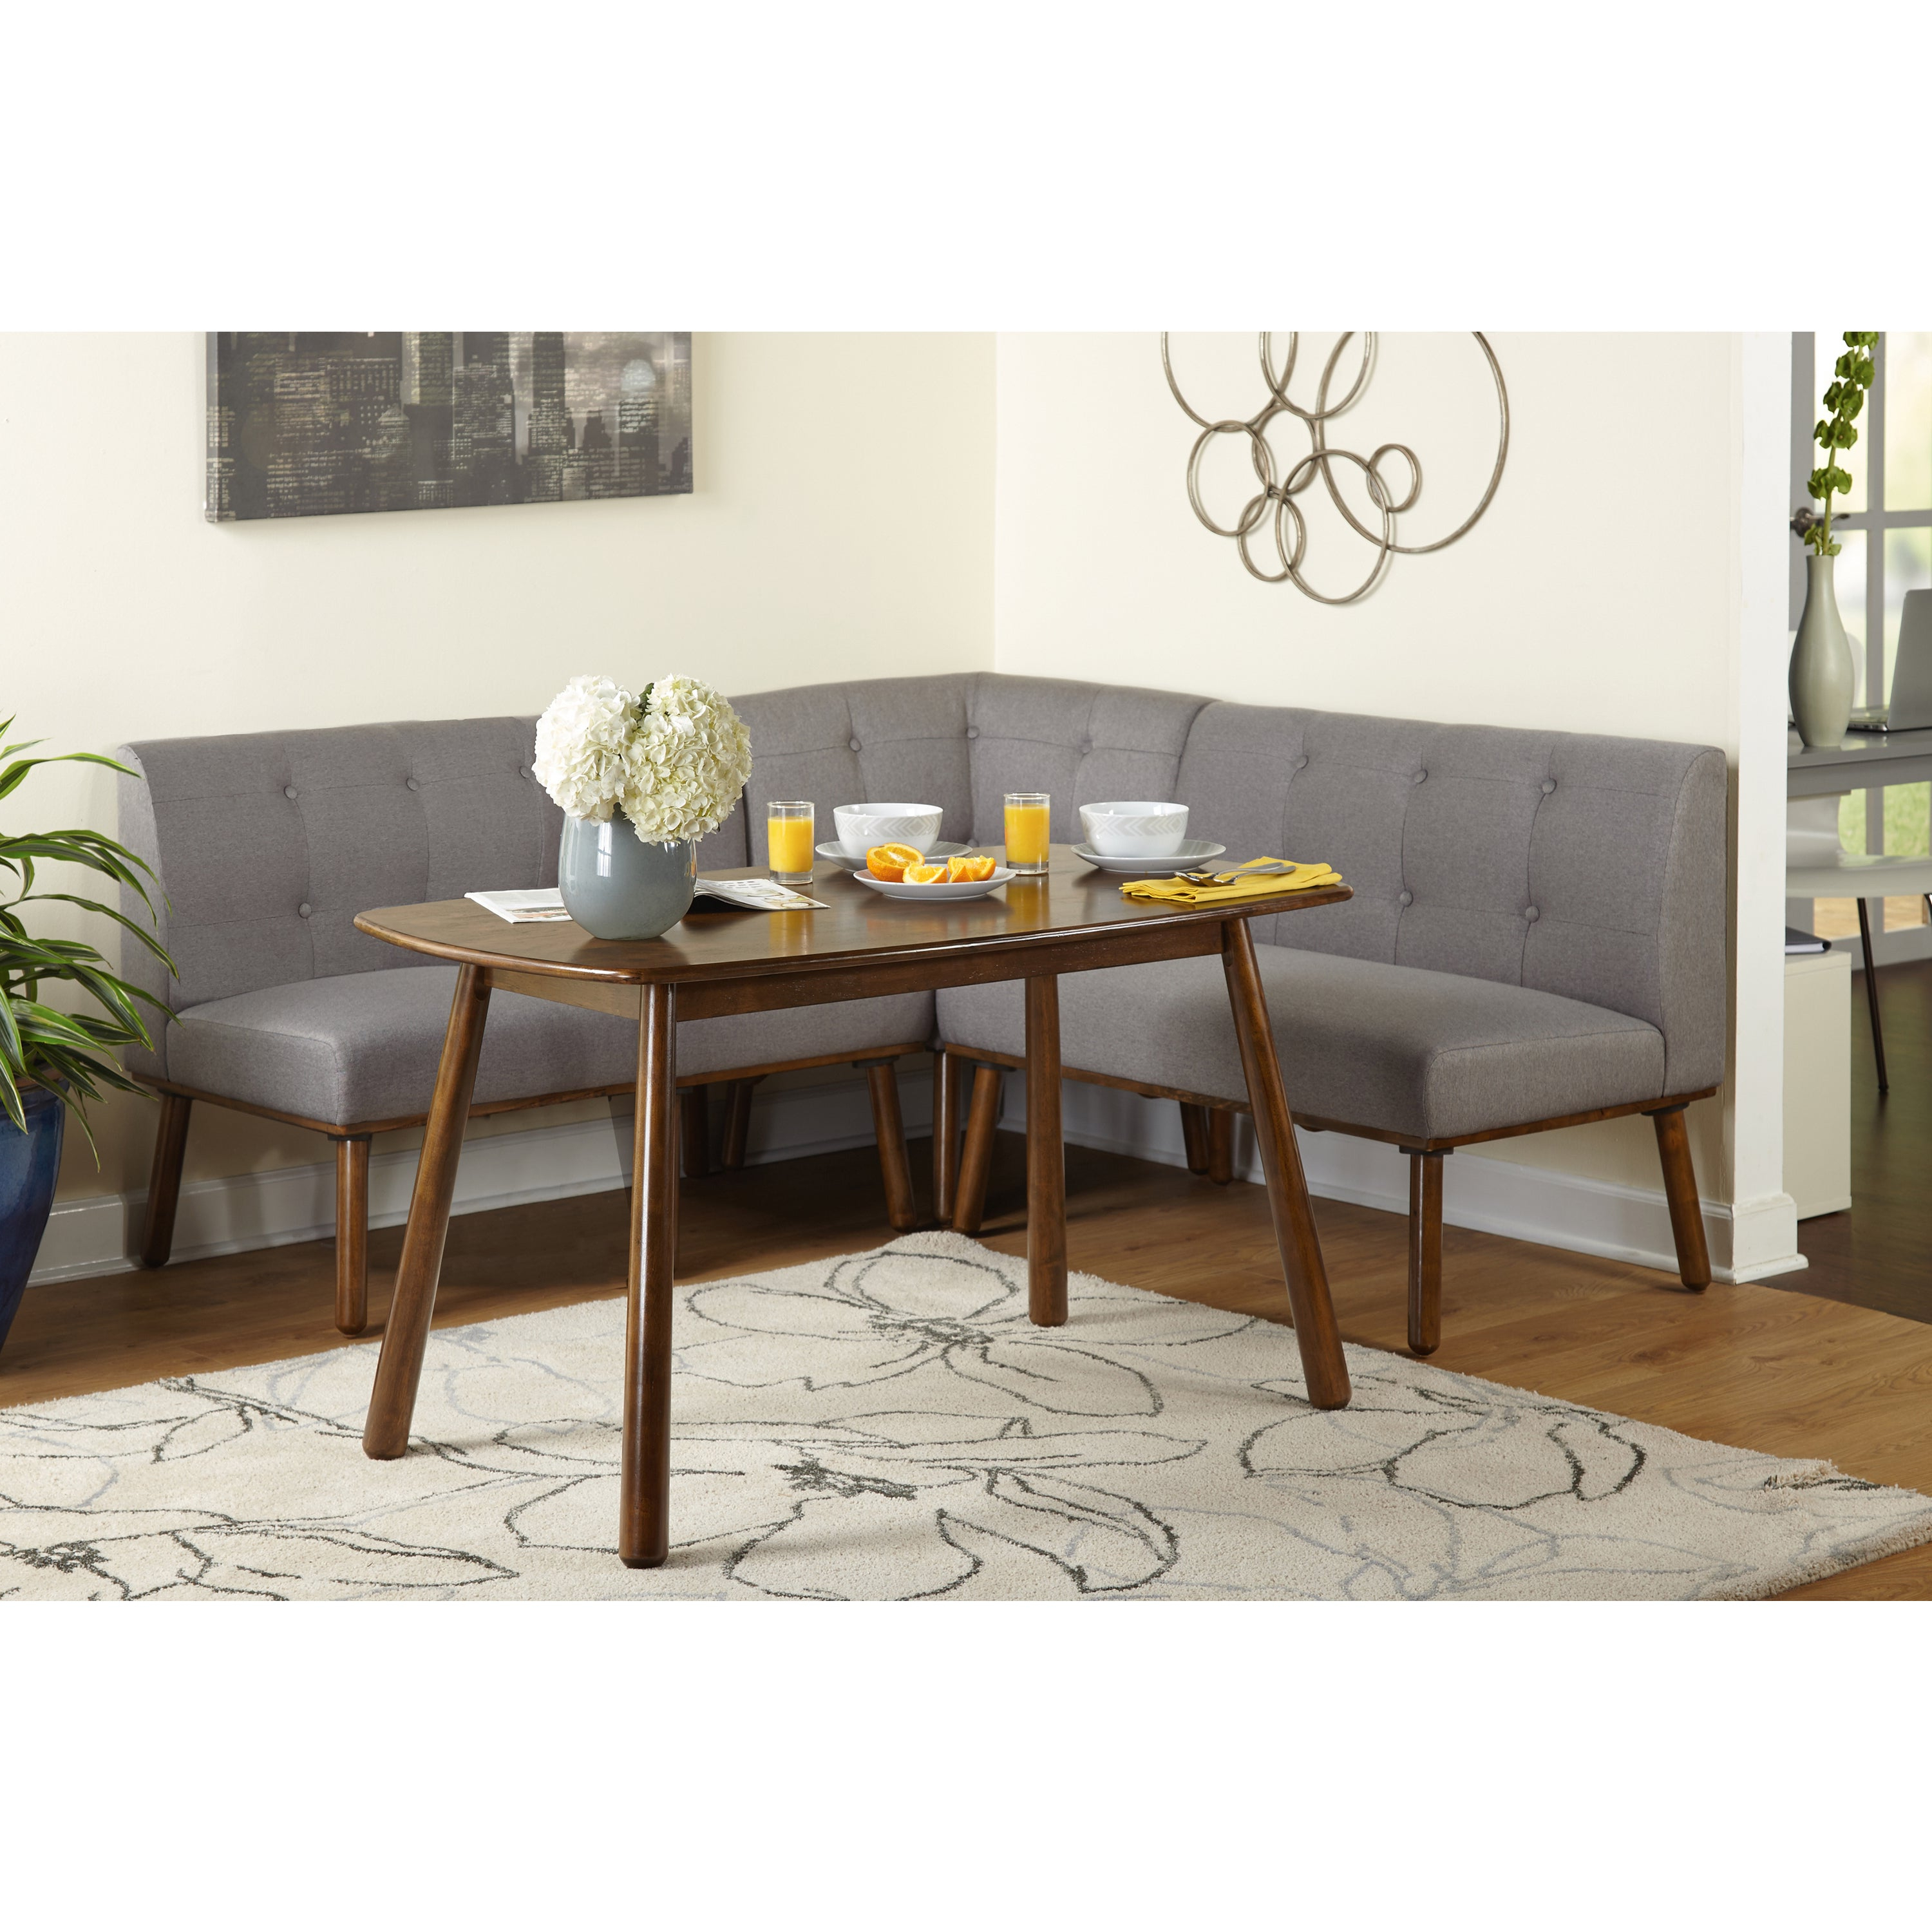 Shop Simple Living 4 Piece Playmate Nook Dining Set – On Sale – Free With Regard To Popular Maloney 3 Piece Breakfast Nook Dining Sets (View 18 of 25)